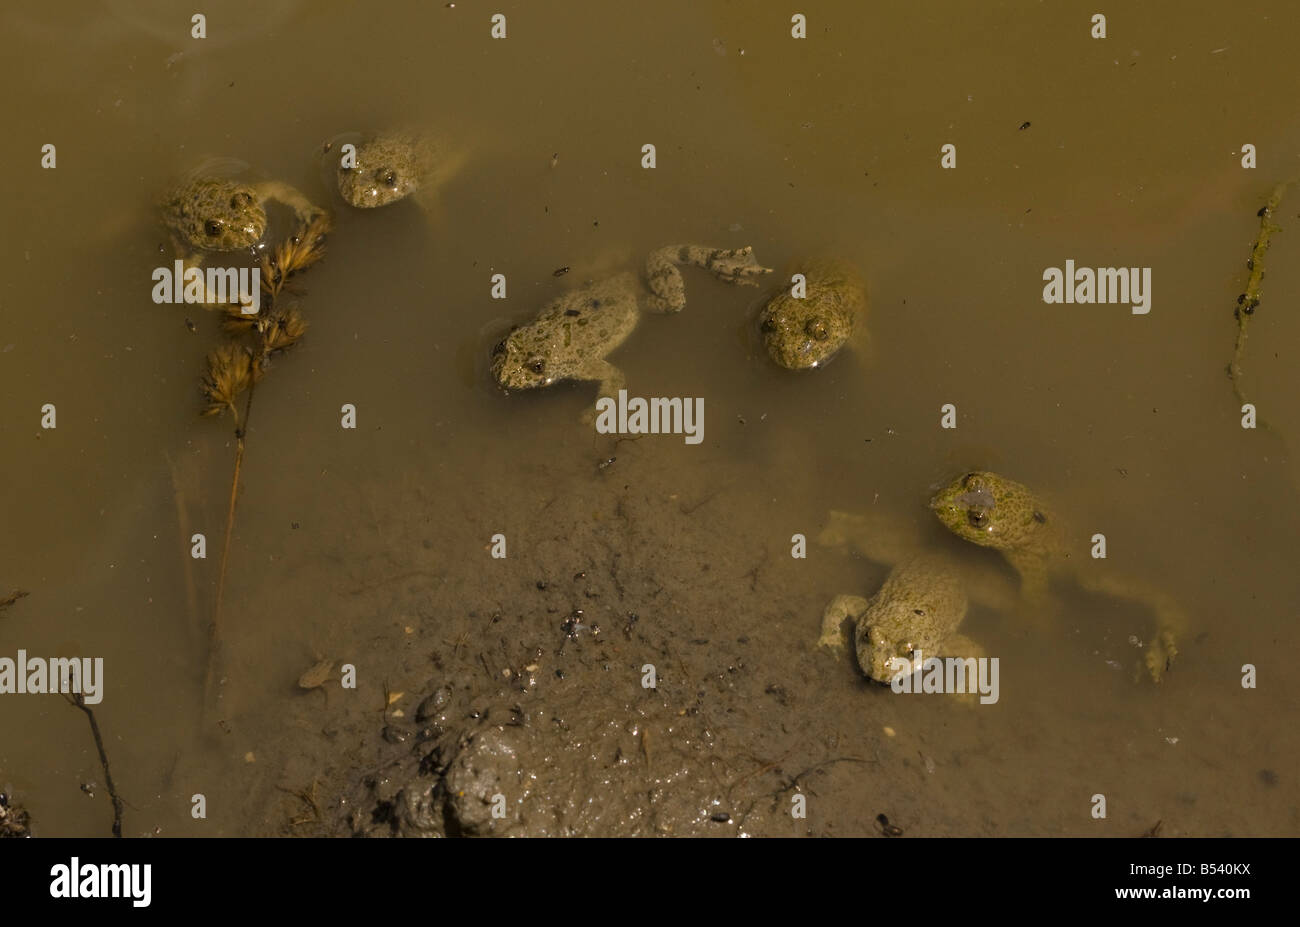 Yellow bellied toads Bombina variegata group of adults in shallow muddy breeding pond Romania - Stock Image